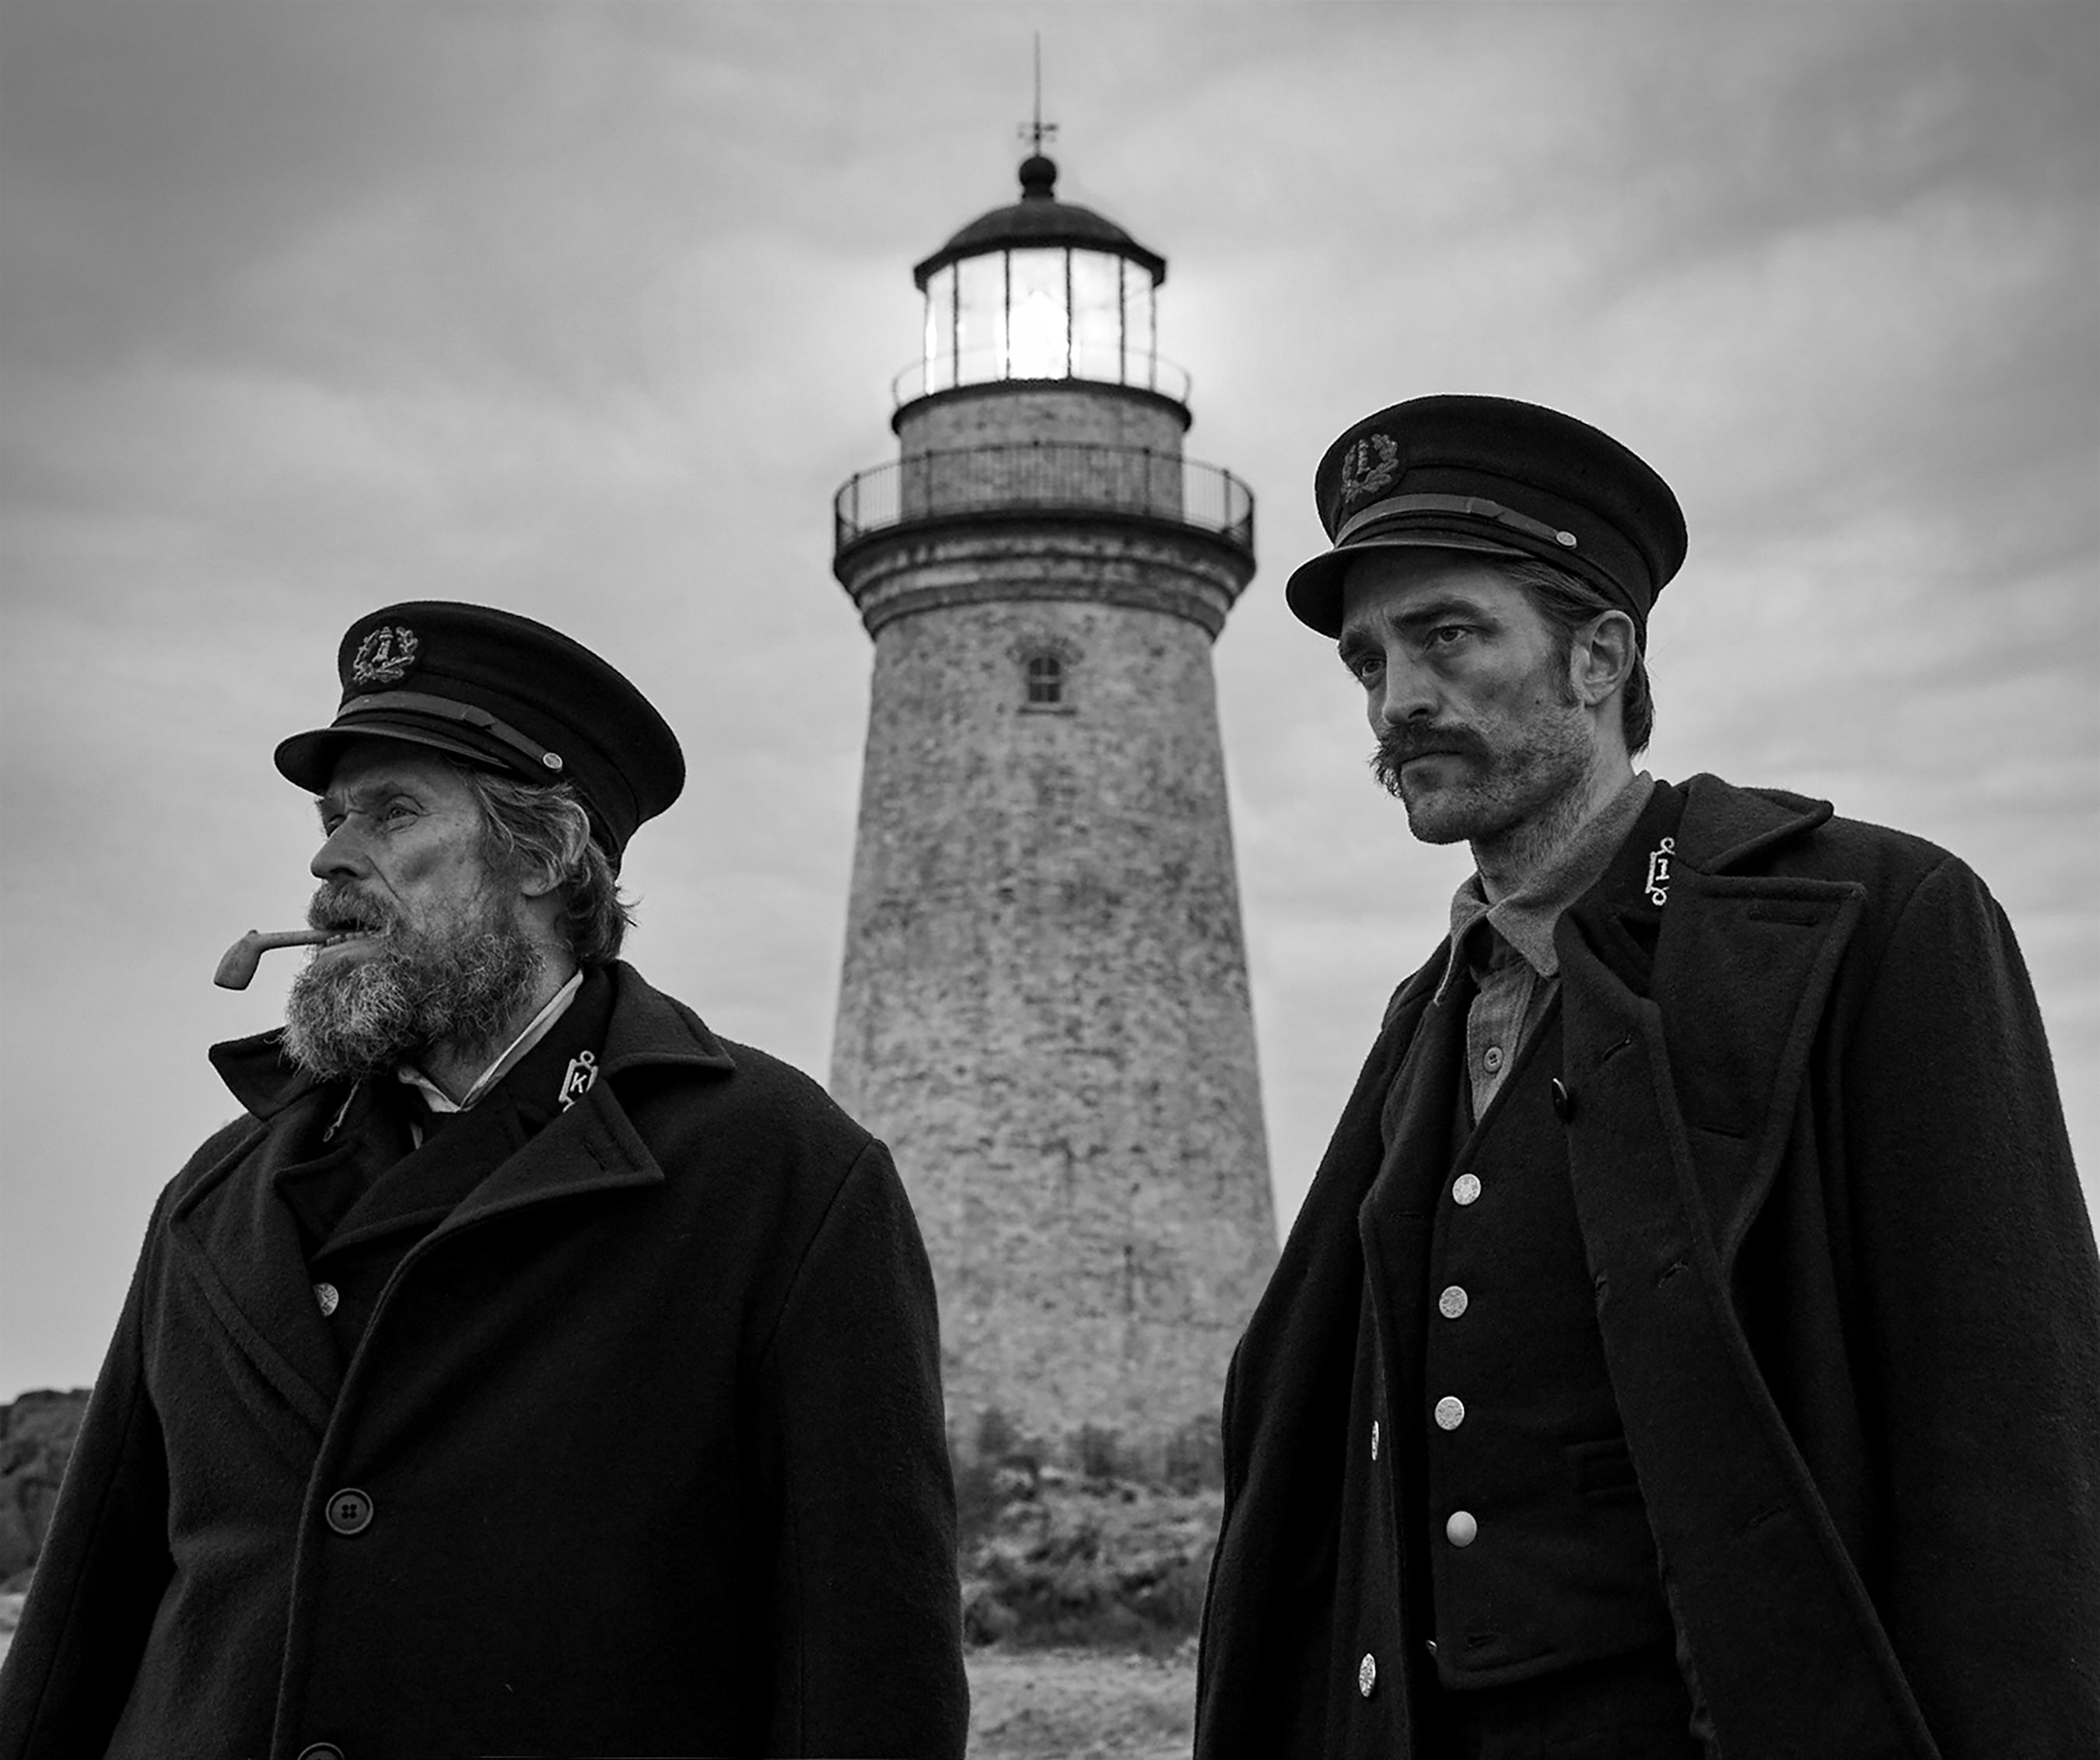 The Witch director Robert Eggers spills his beans about The Lighthouse